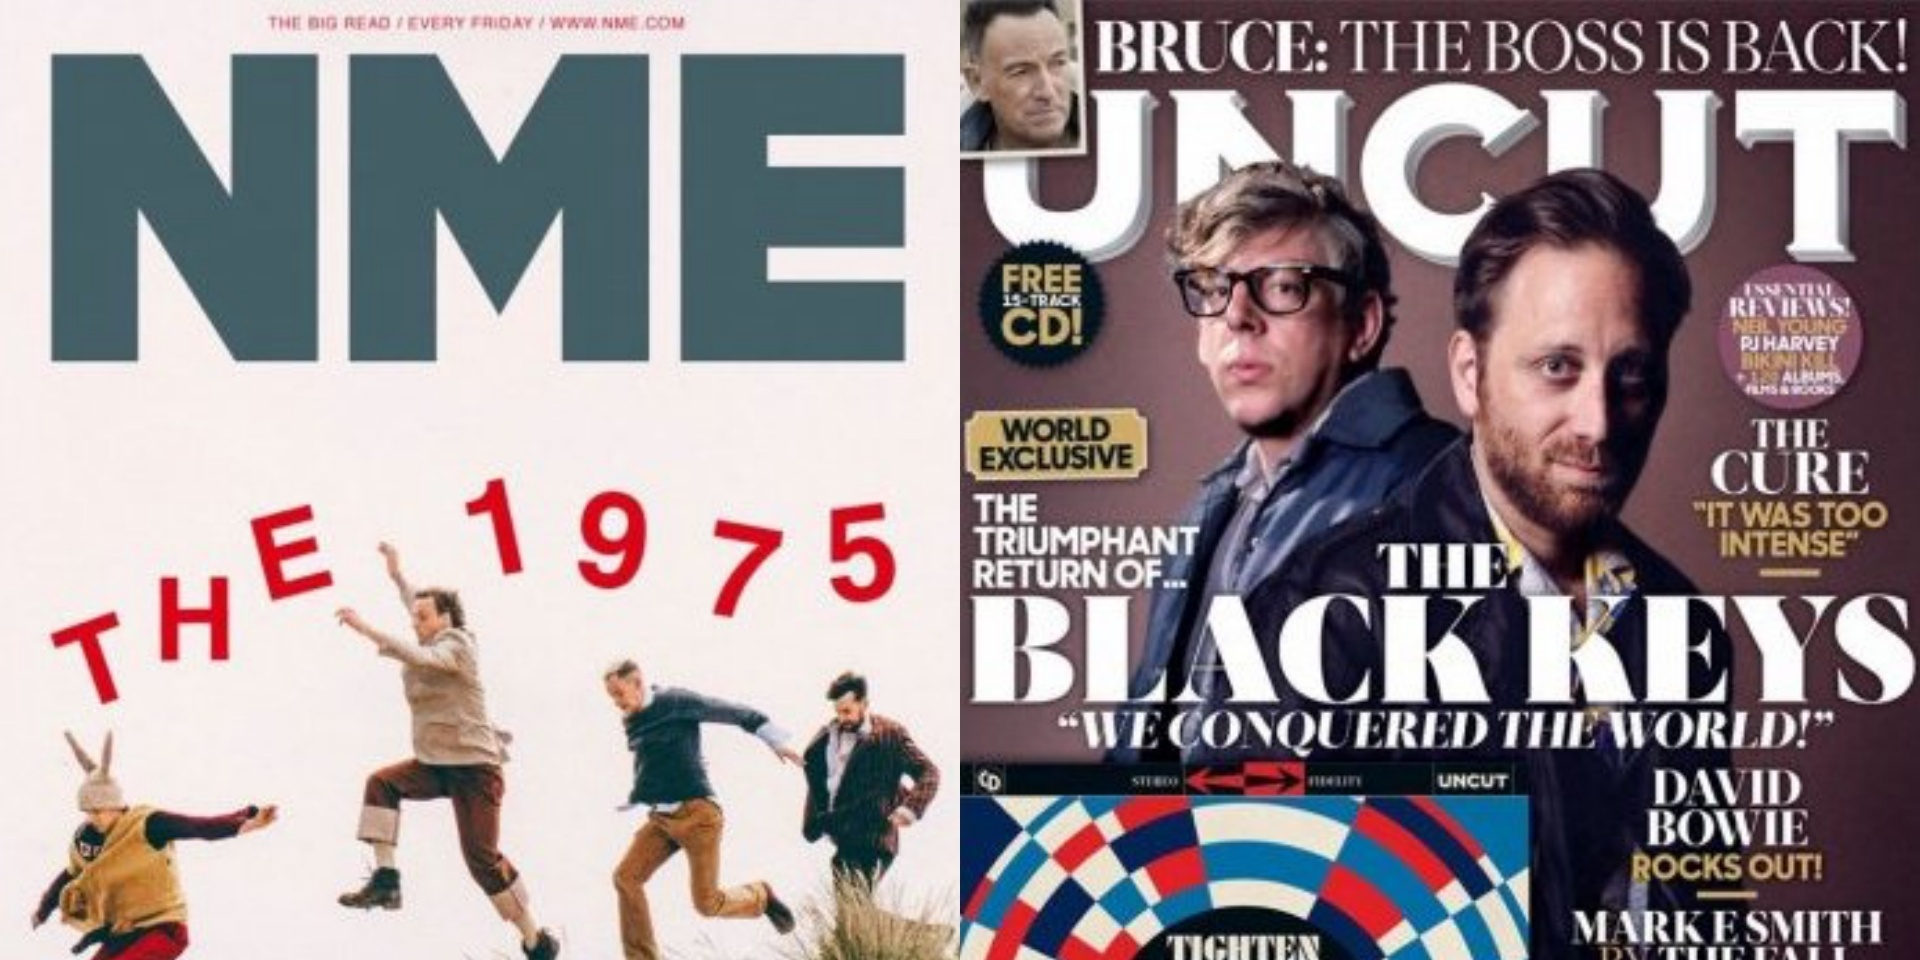 BandLab Technologies acquires UK music publications NME and Uncut